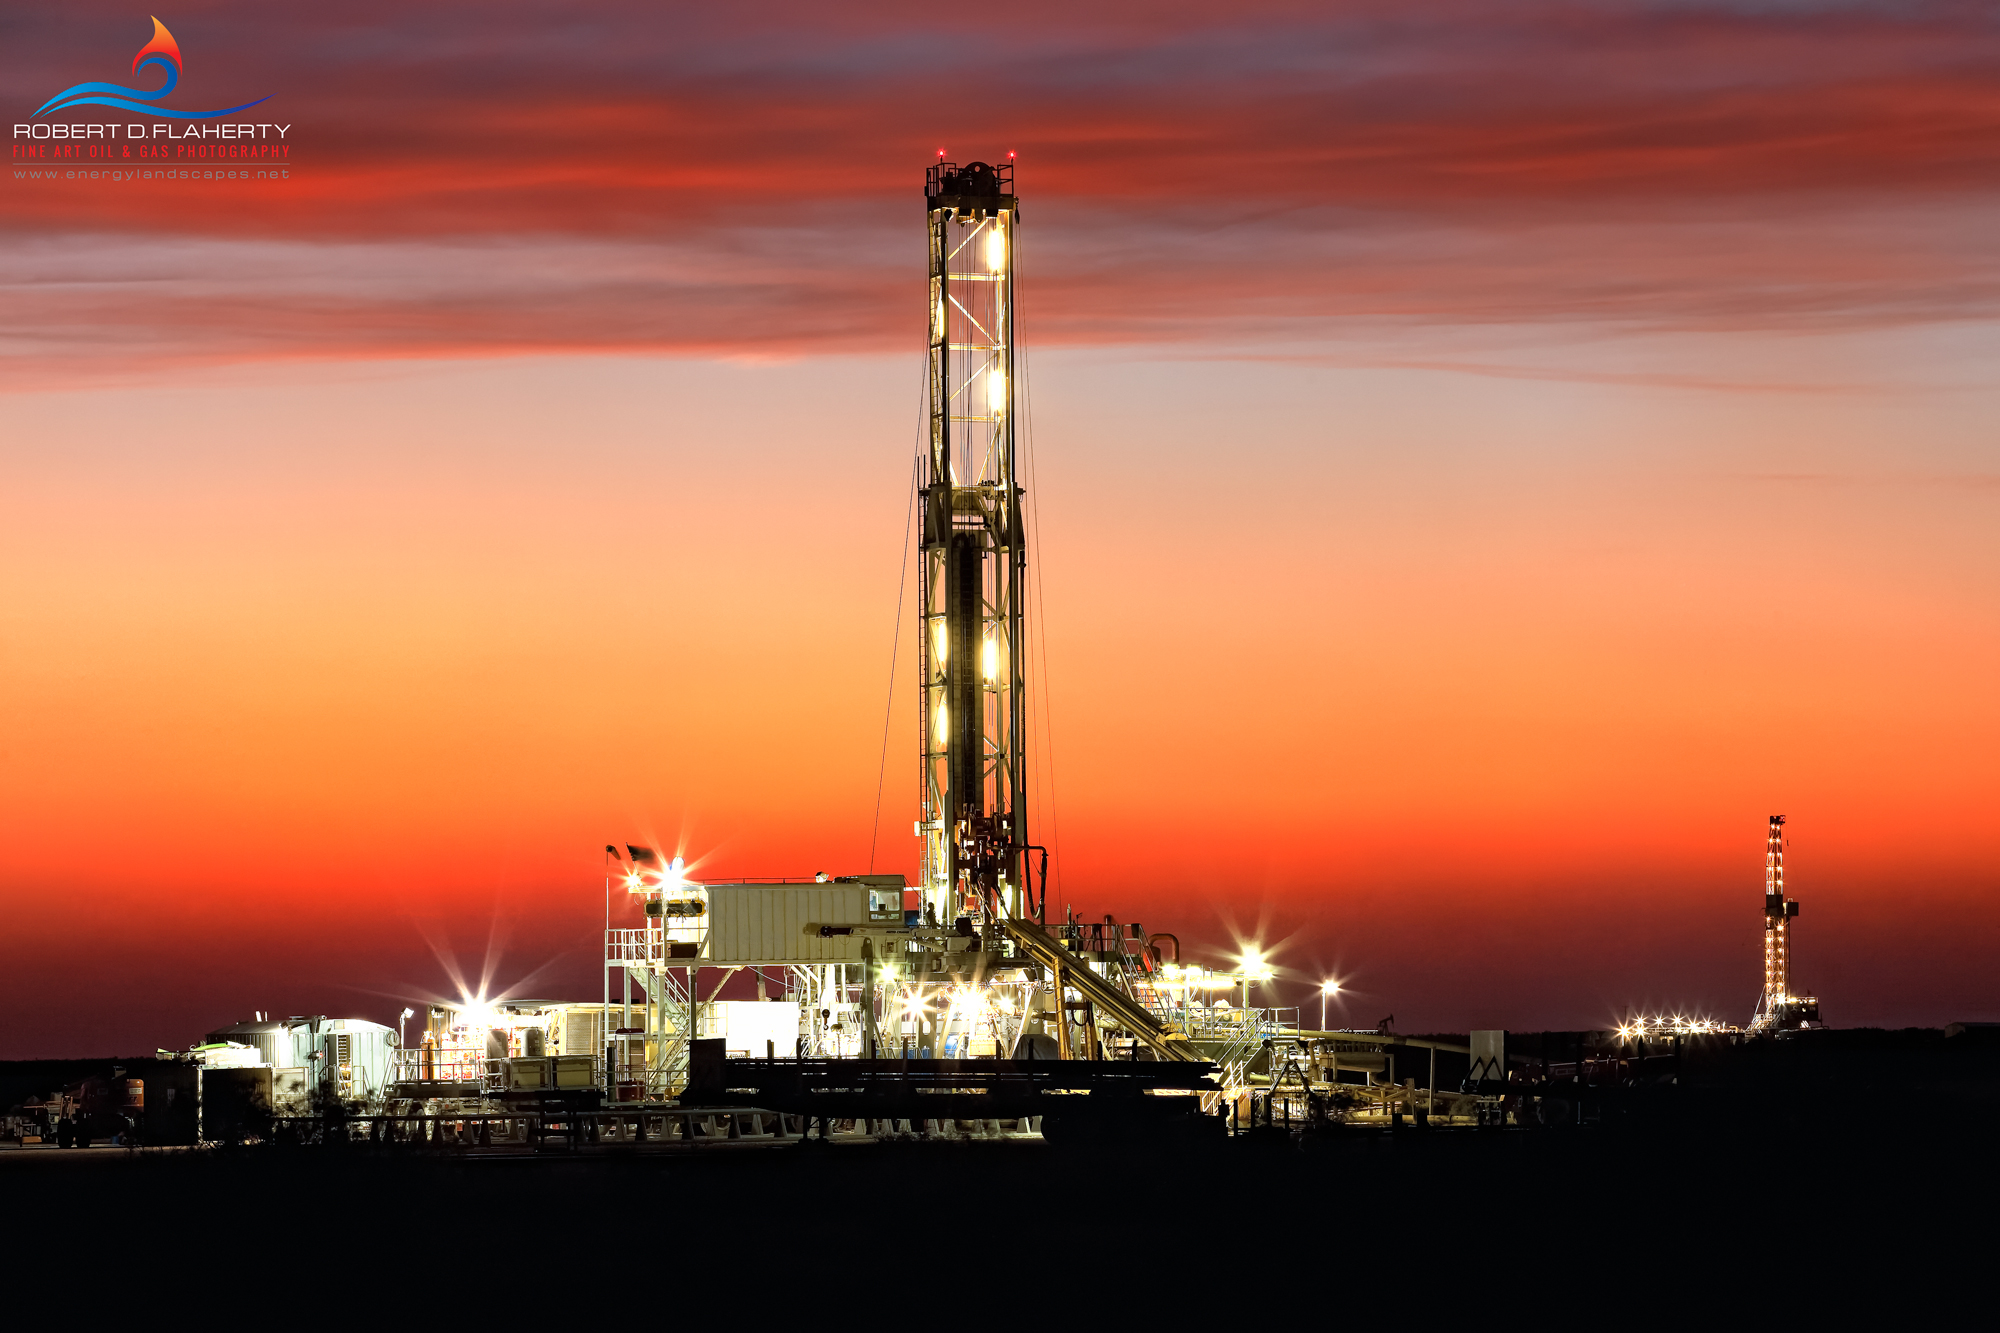 Drilling rig, Midland County Texas, evening tour, evening tower, oil drilling, sunset, oil and gas photography, Permian Basin, H&P Drilling